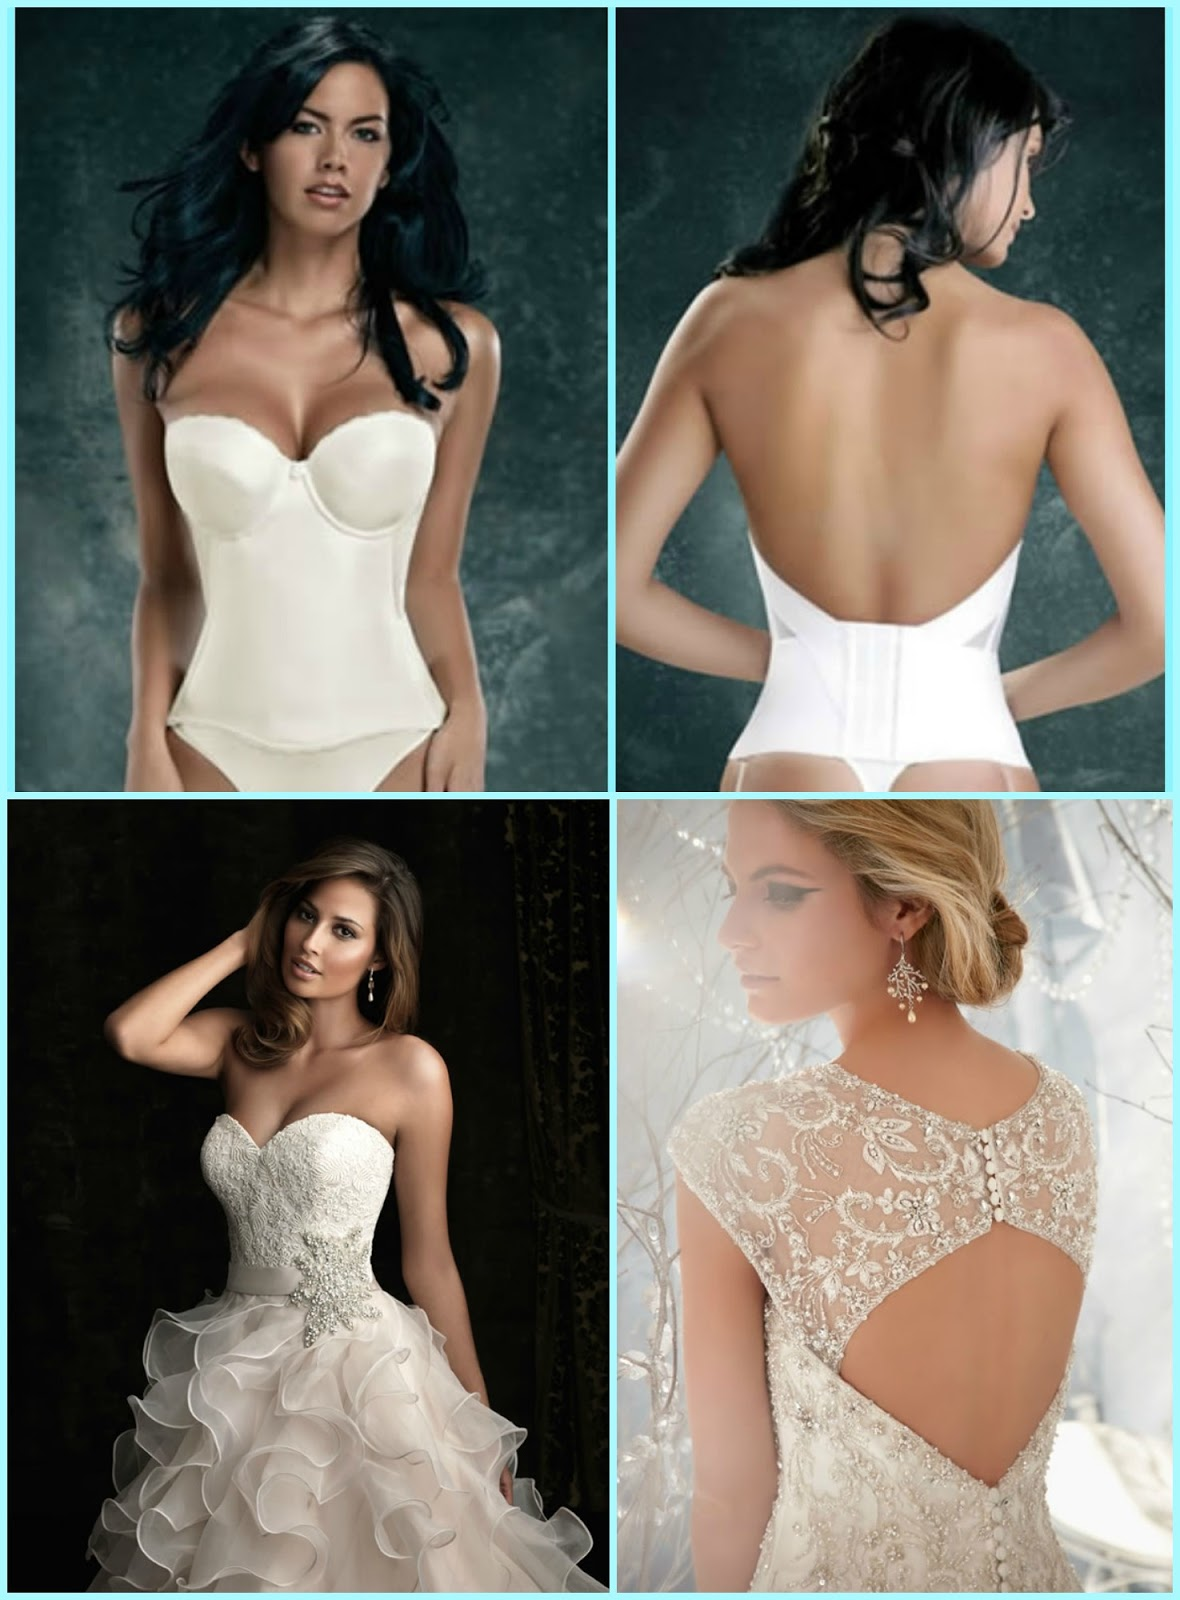 21334bbc85 A wedding dress often requires a very specialized bra. Many women have  trouble finding the right one. We used to hear complaints like